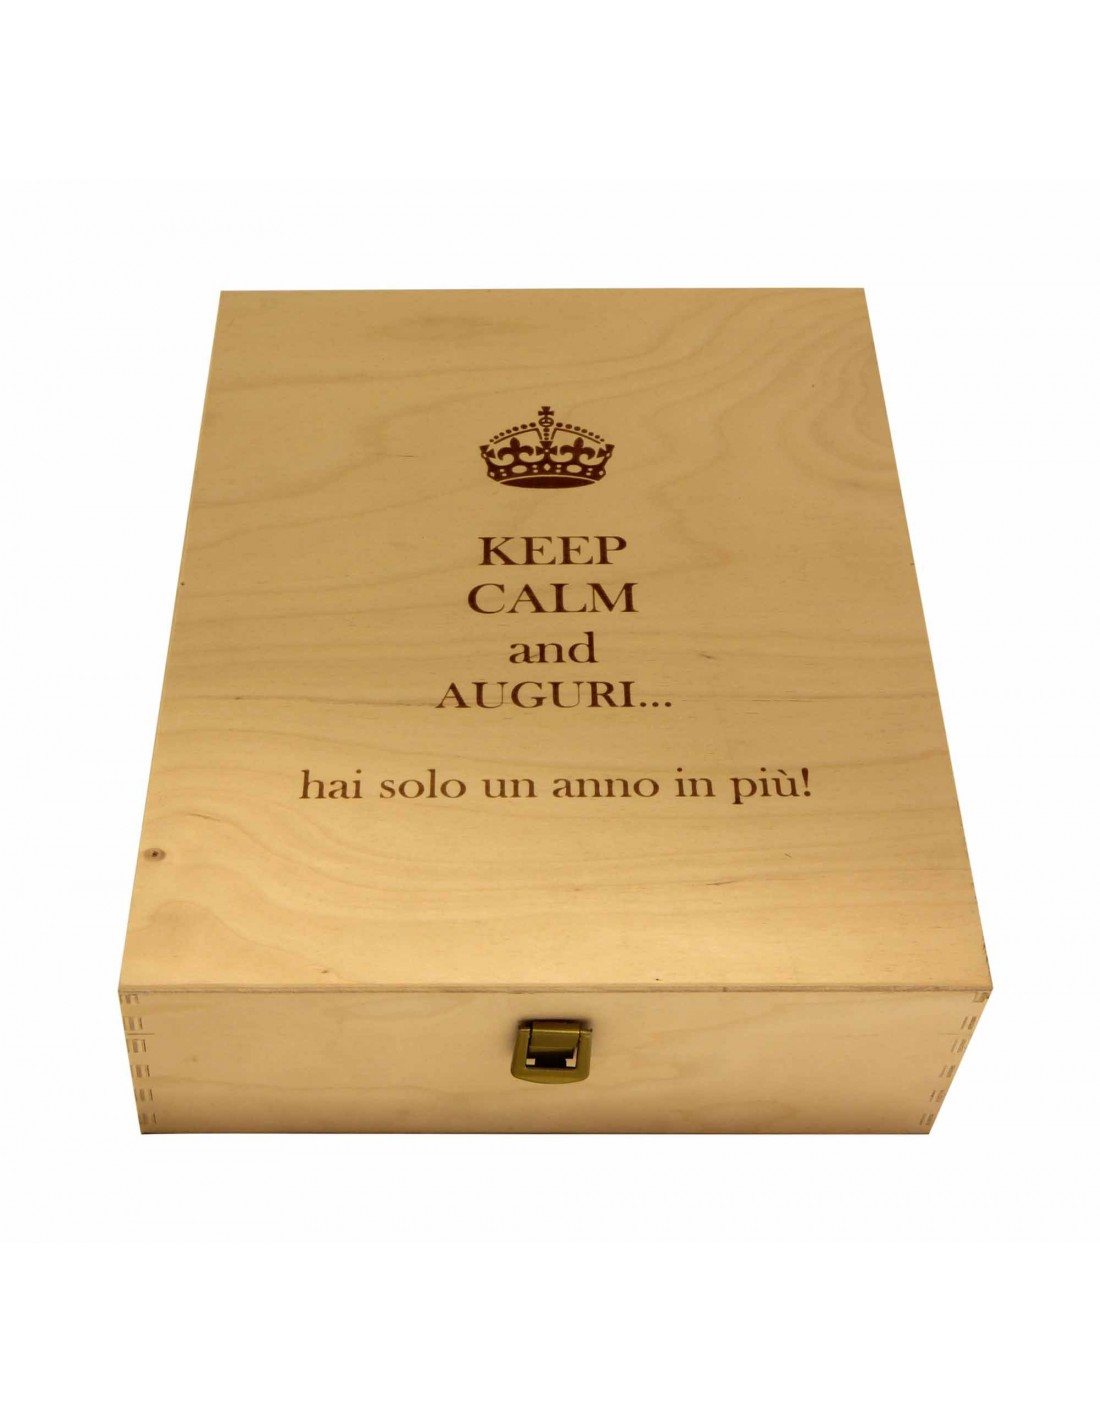 PERSONALIZED WOODEN WINE BOX - 3 BOTTLES - ILVA3